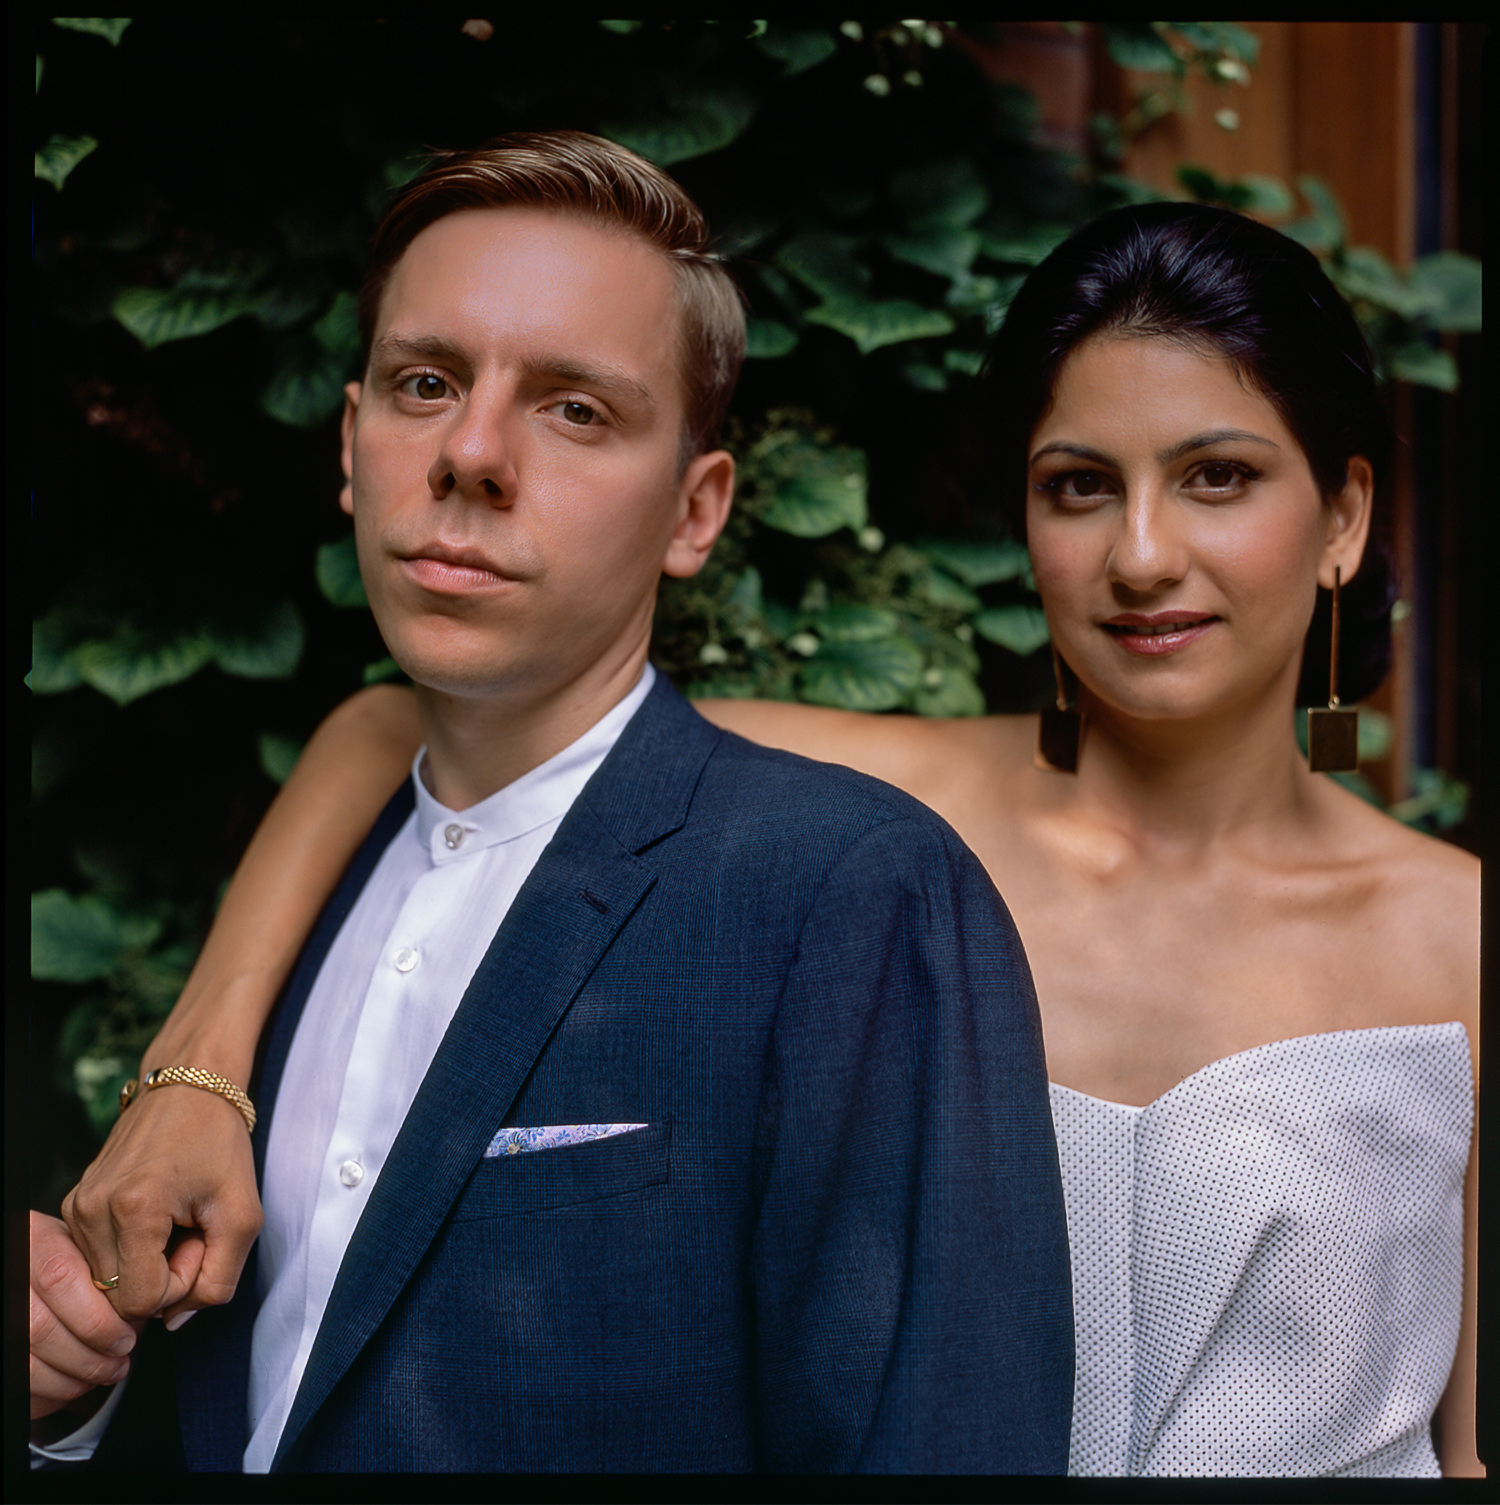 Best-analog-film-wedding-photographers-Toronto-Ontario-Best-Wedding-Photography-Analog-Film-Hasselblad-501cm-Fuji-400h--bride-in-a-white-jumpsuit-groom-no-tie.jpg